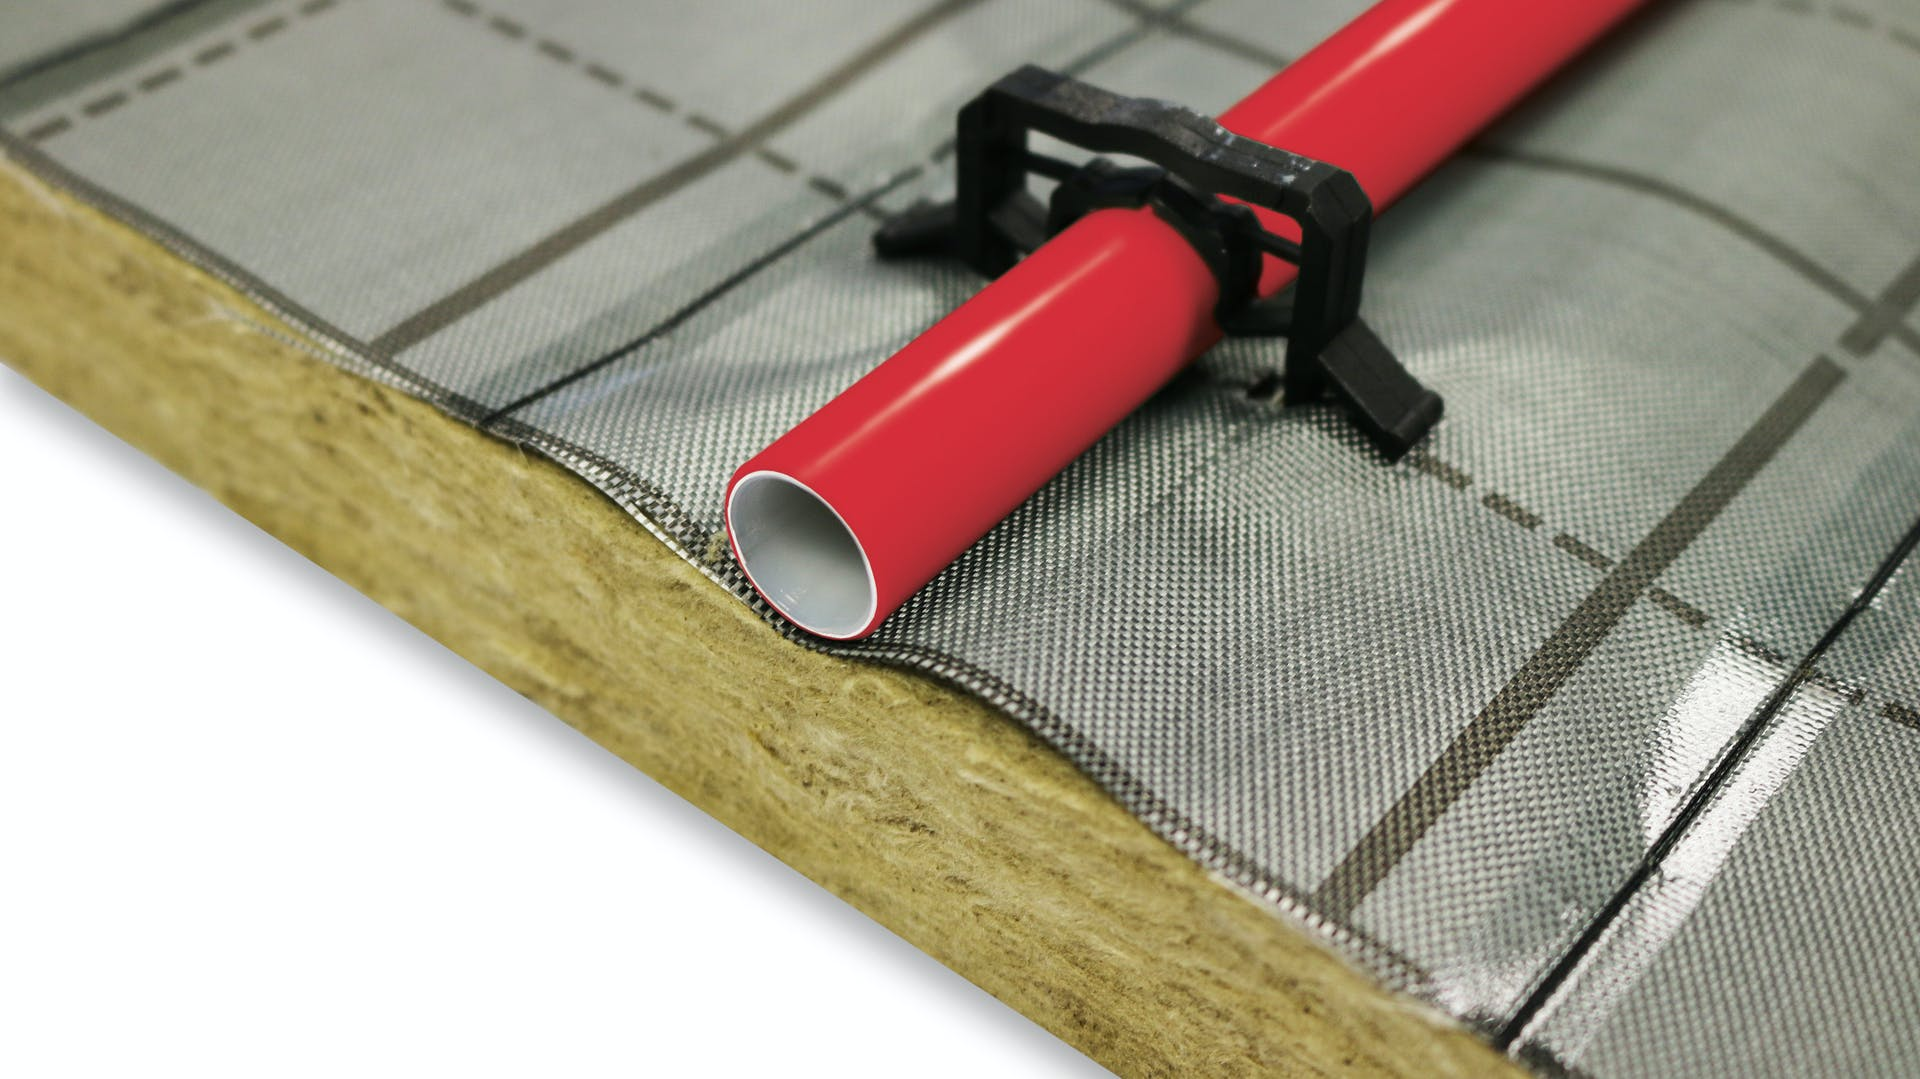 product, floor, sound insulation, trittschall, trittschalldämmung, fußboden, fußbodenheizung, floorrock, floorrock heat, red piping, germany